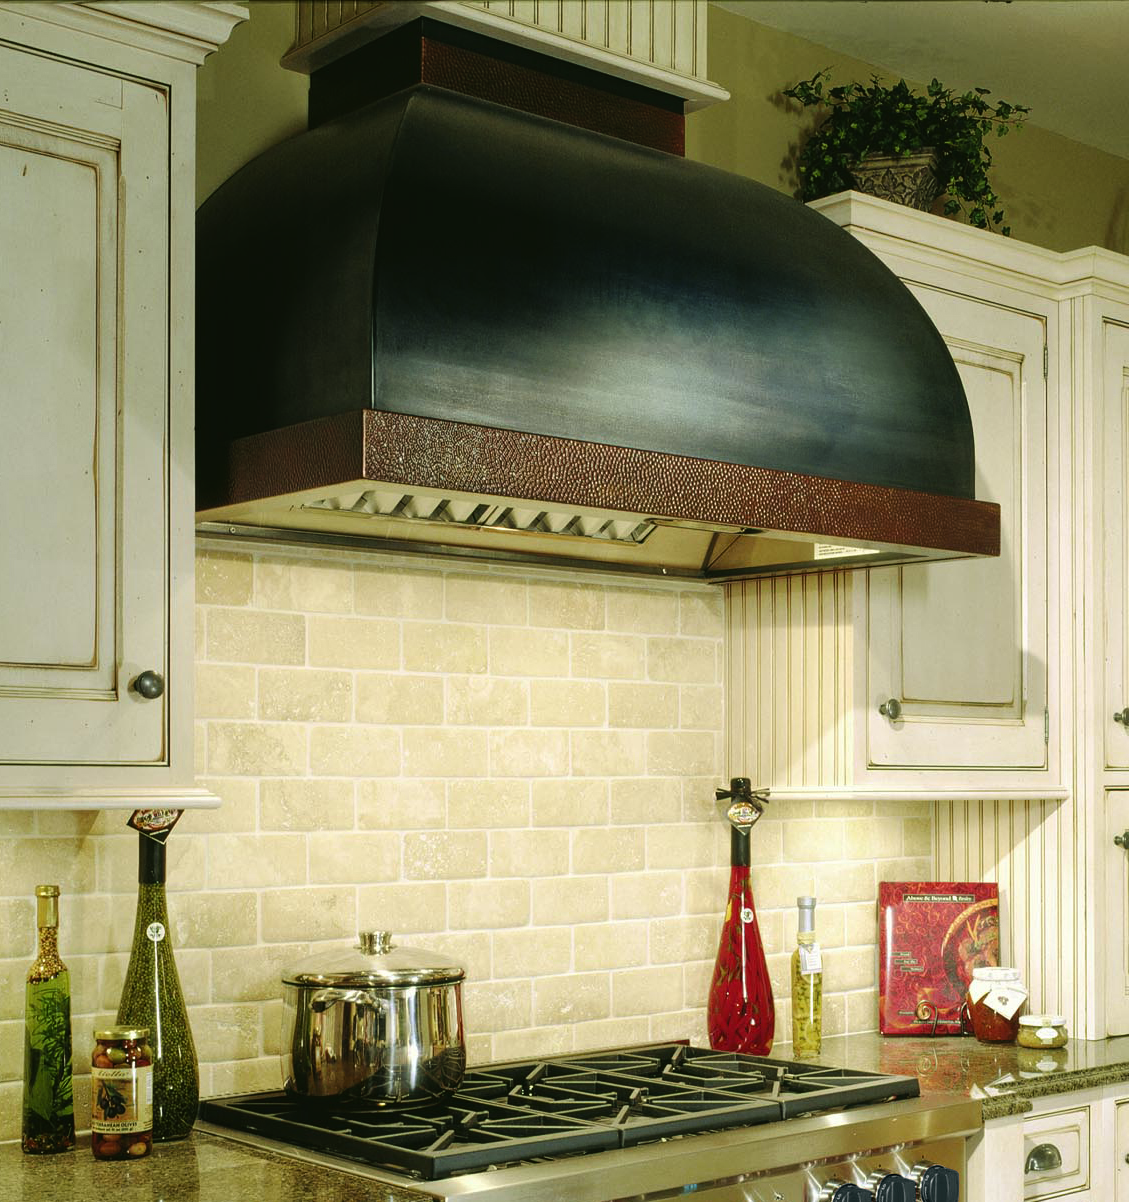 Kitchen Hood: Let Your Kitchen Hood Vent: Introducing Luxury Designs And